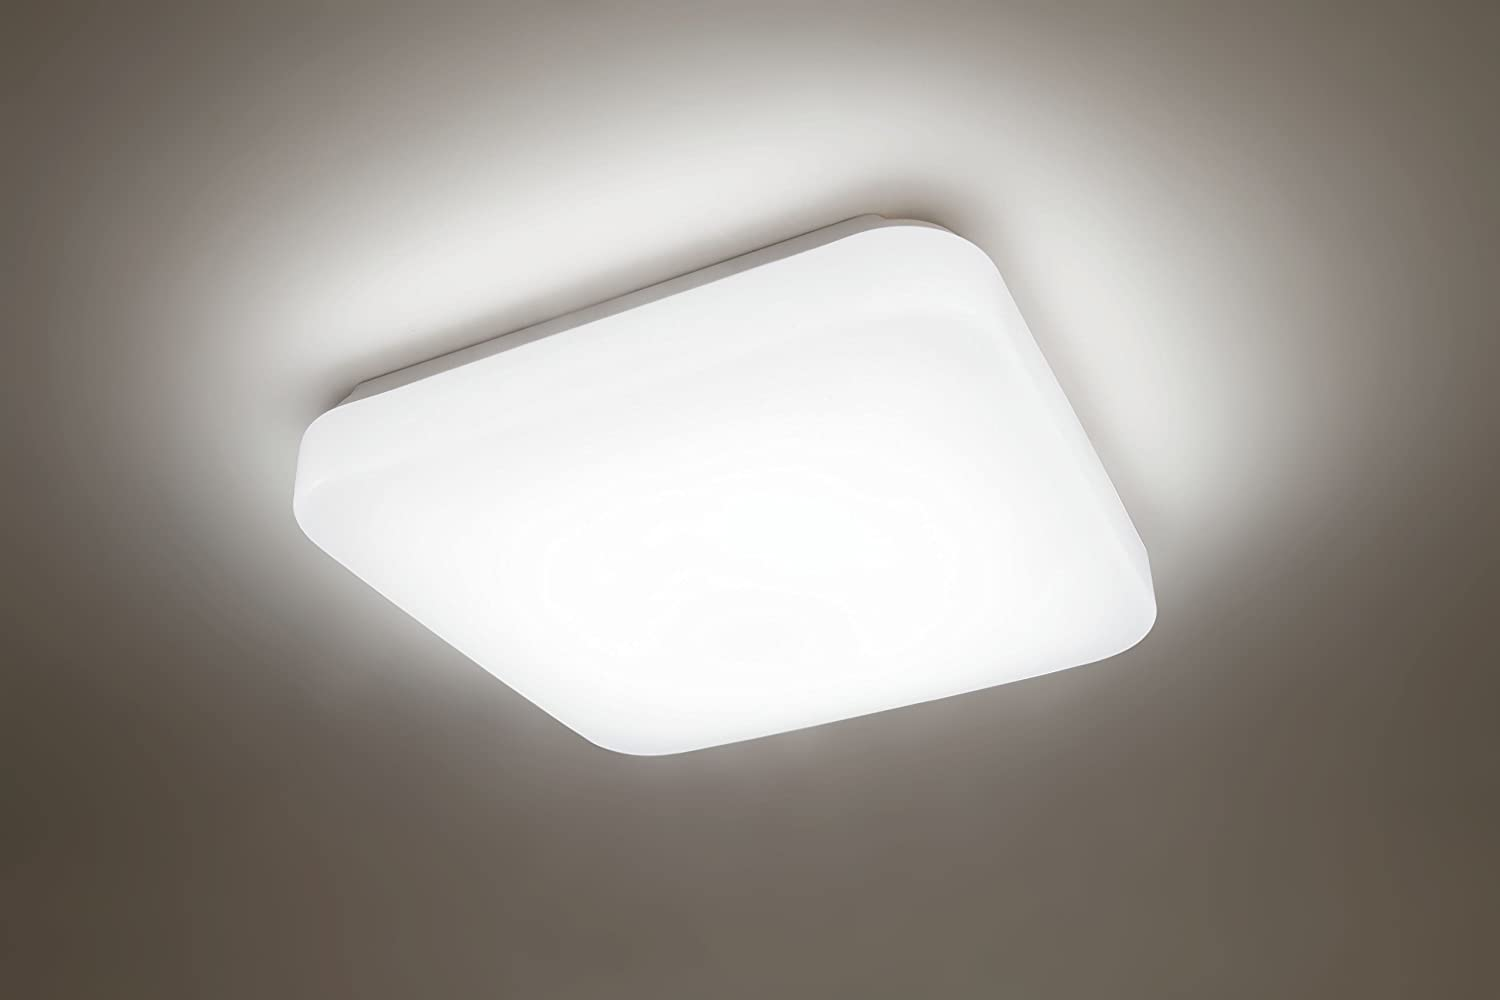 Philips mauve lampada da soffitto led forma quadrata 2000 lm